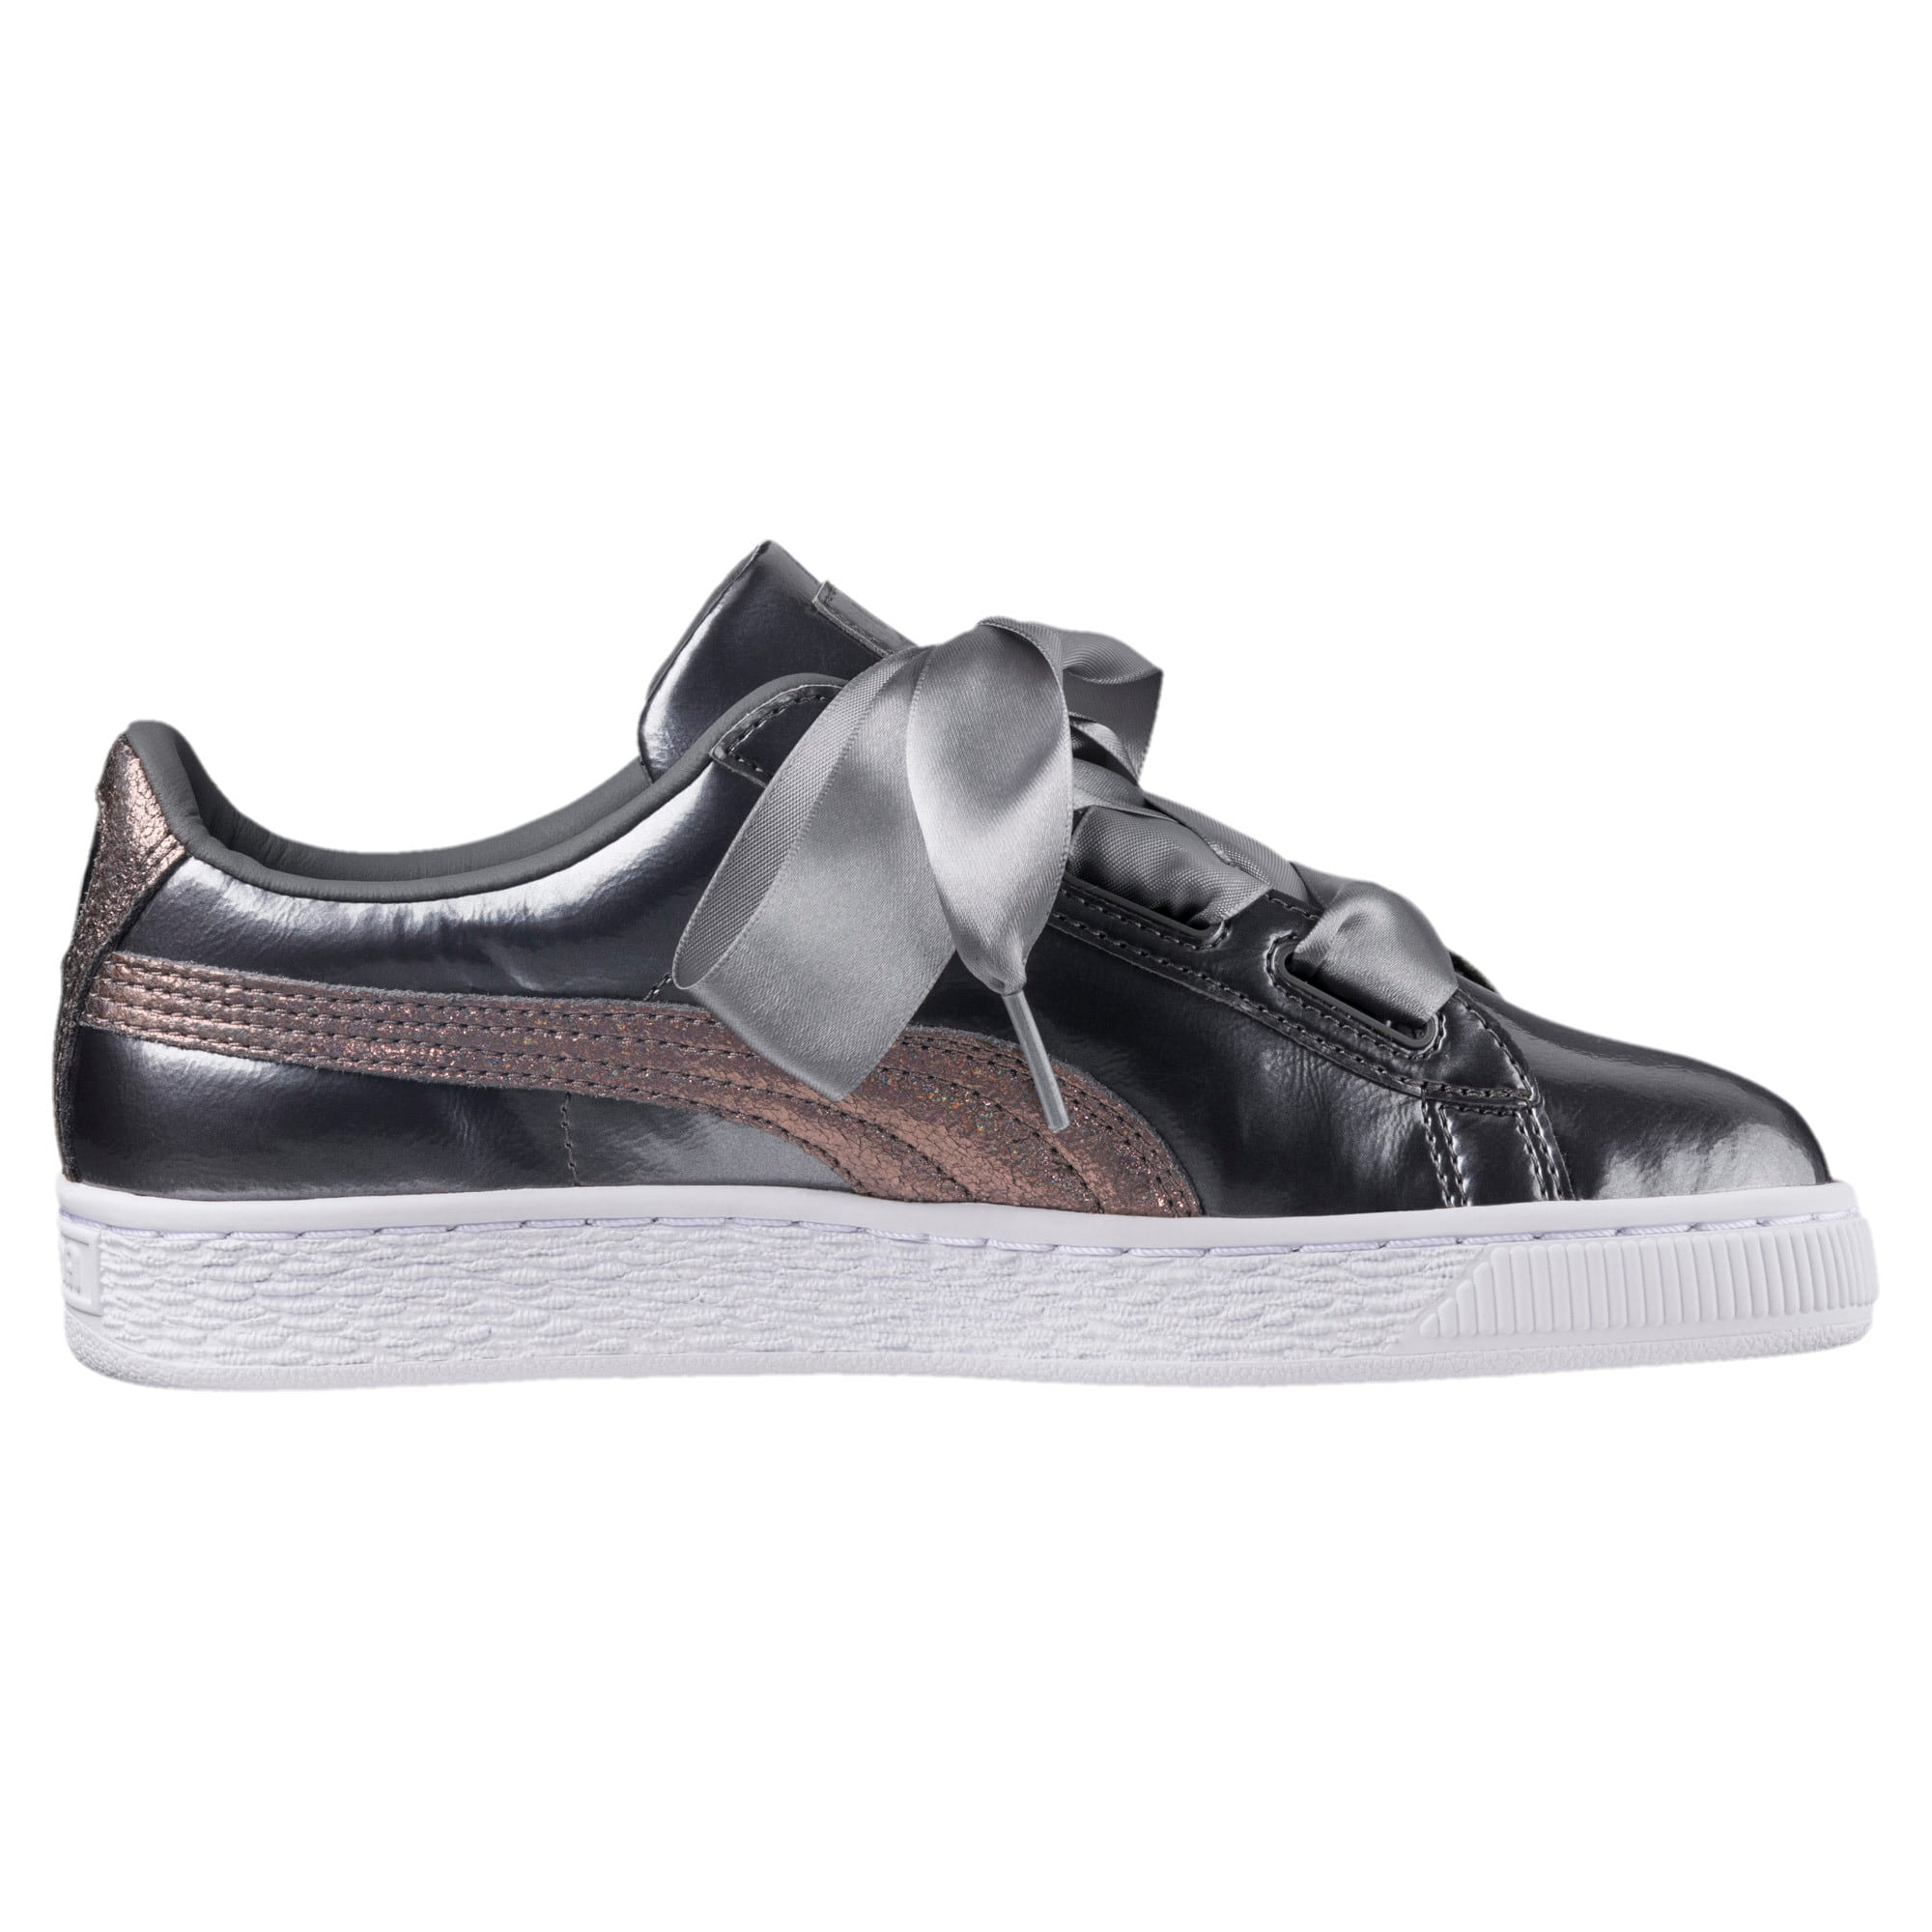 Thumbnail 4 of Basket Heart Lunar Lux Jr Trainers, Smoked Pearl, medium-IND